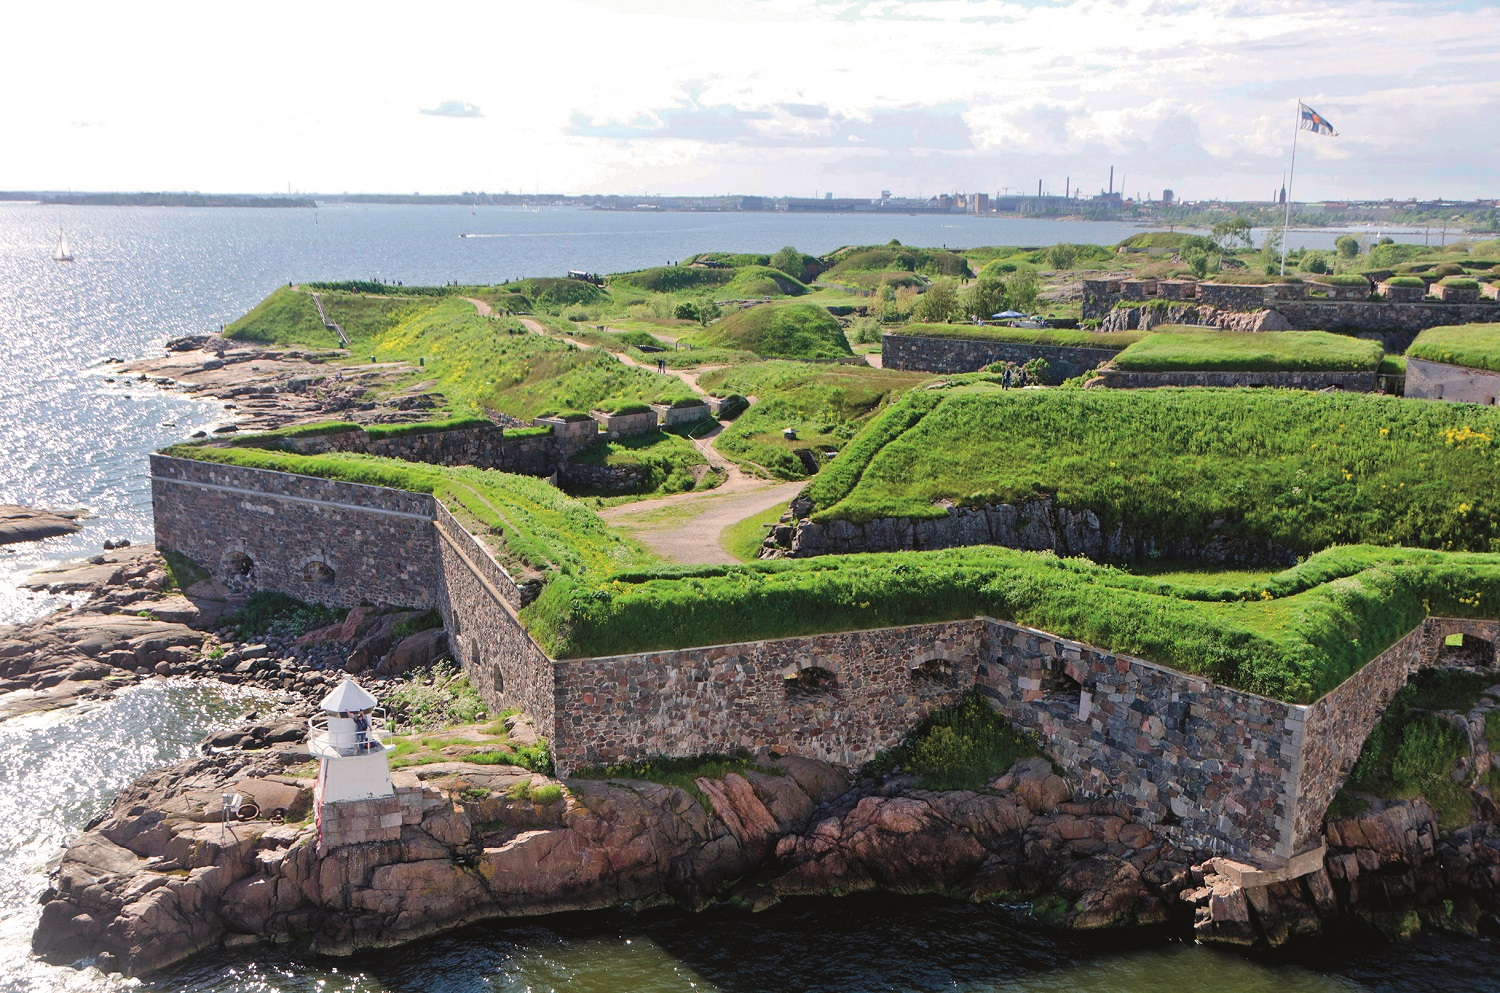 Star shaped fortress, Suomenlinna Island, Helsinki, Finland, Scandinavia, Europe, Image: 159501848, License: Rights-managed, Restrictions: , Model Release: no, Credit line: Geoff  Marshall / Alamy / Alamy / Profimedia